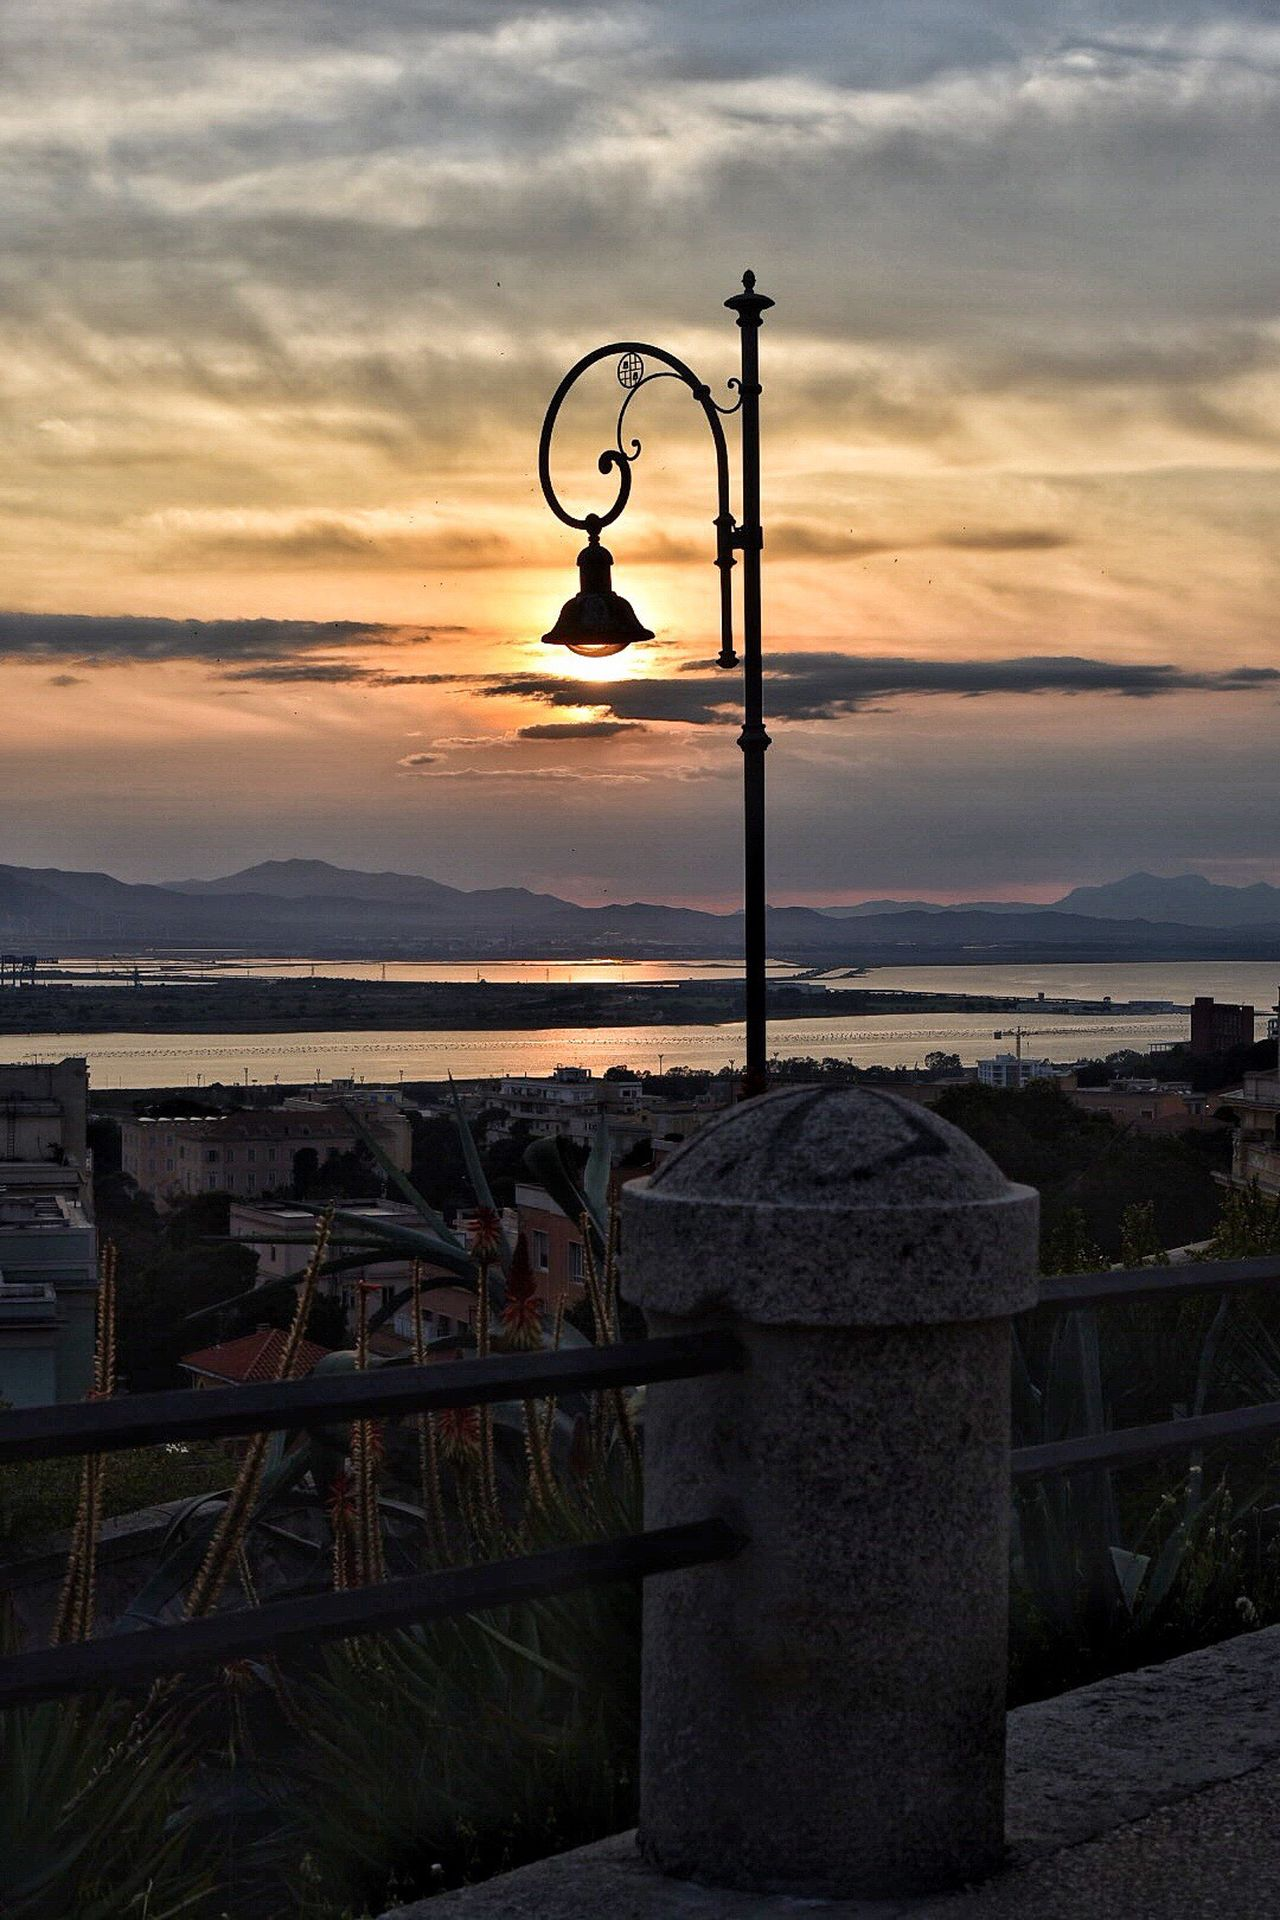 Sky Sunset Sea Cloud - Sky Nature Water No People Outdoors Horizon Over Water Beauty In Nature Scenics Built Structure Day EyeEmBestPics Cagliari, Sardinia Cagliari Relax Passeggiata EyeEm Best Shots EyeEmbestshots Paradiso Sardinia Sardegna Italy  Cagliari Urban City Walking Around EyeEm Gallery EyeEmNewHere EyeEm Masterclass Art Is Everywhere